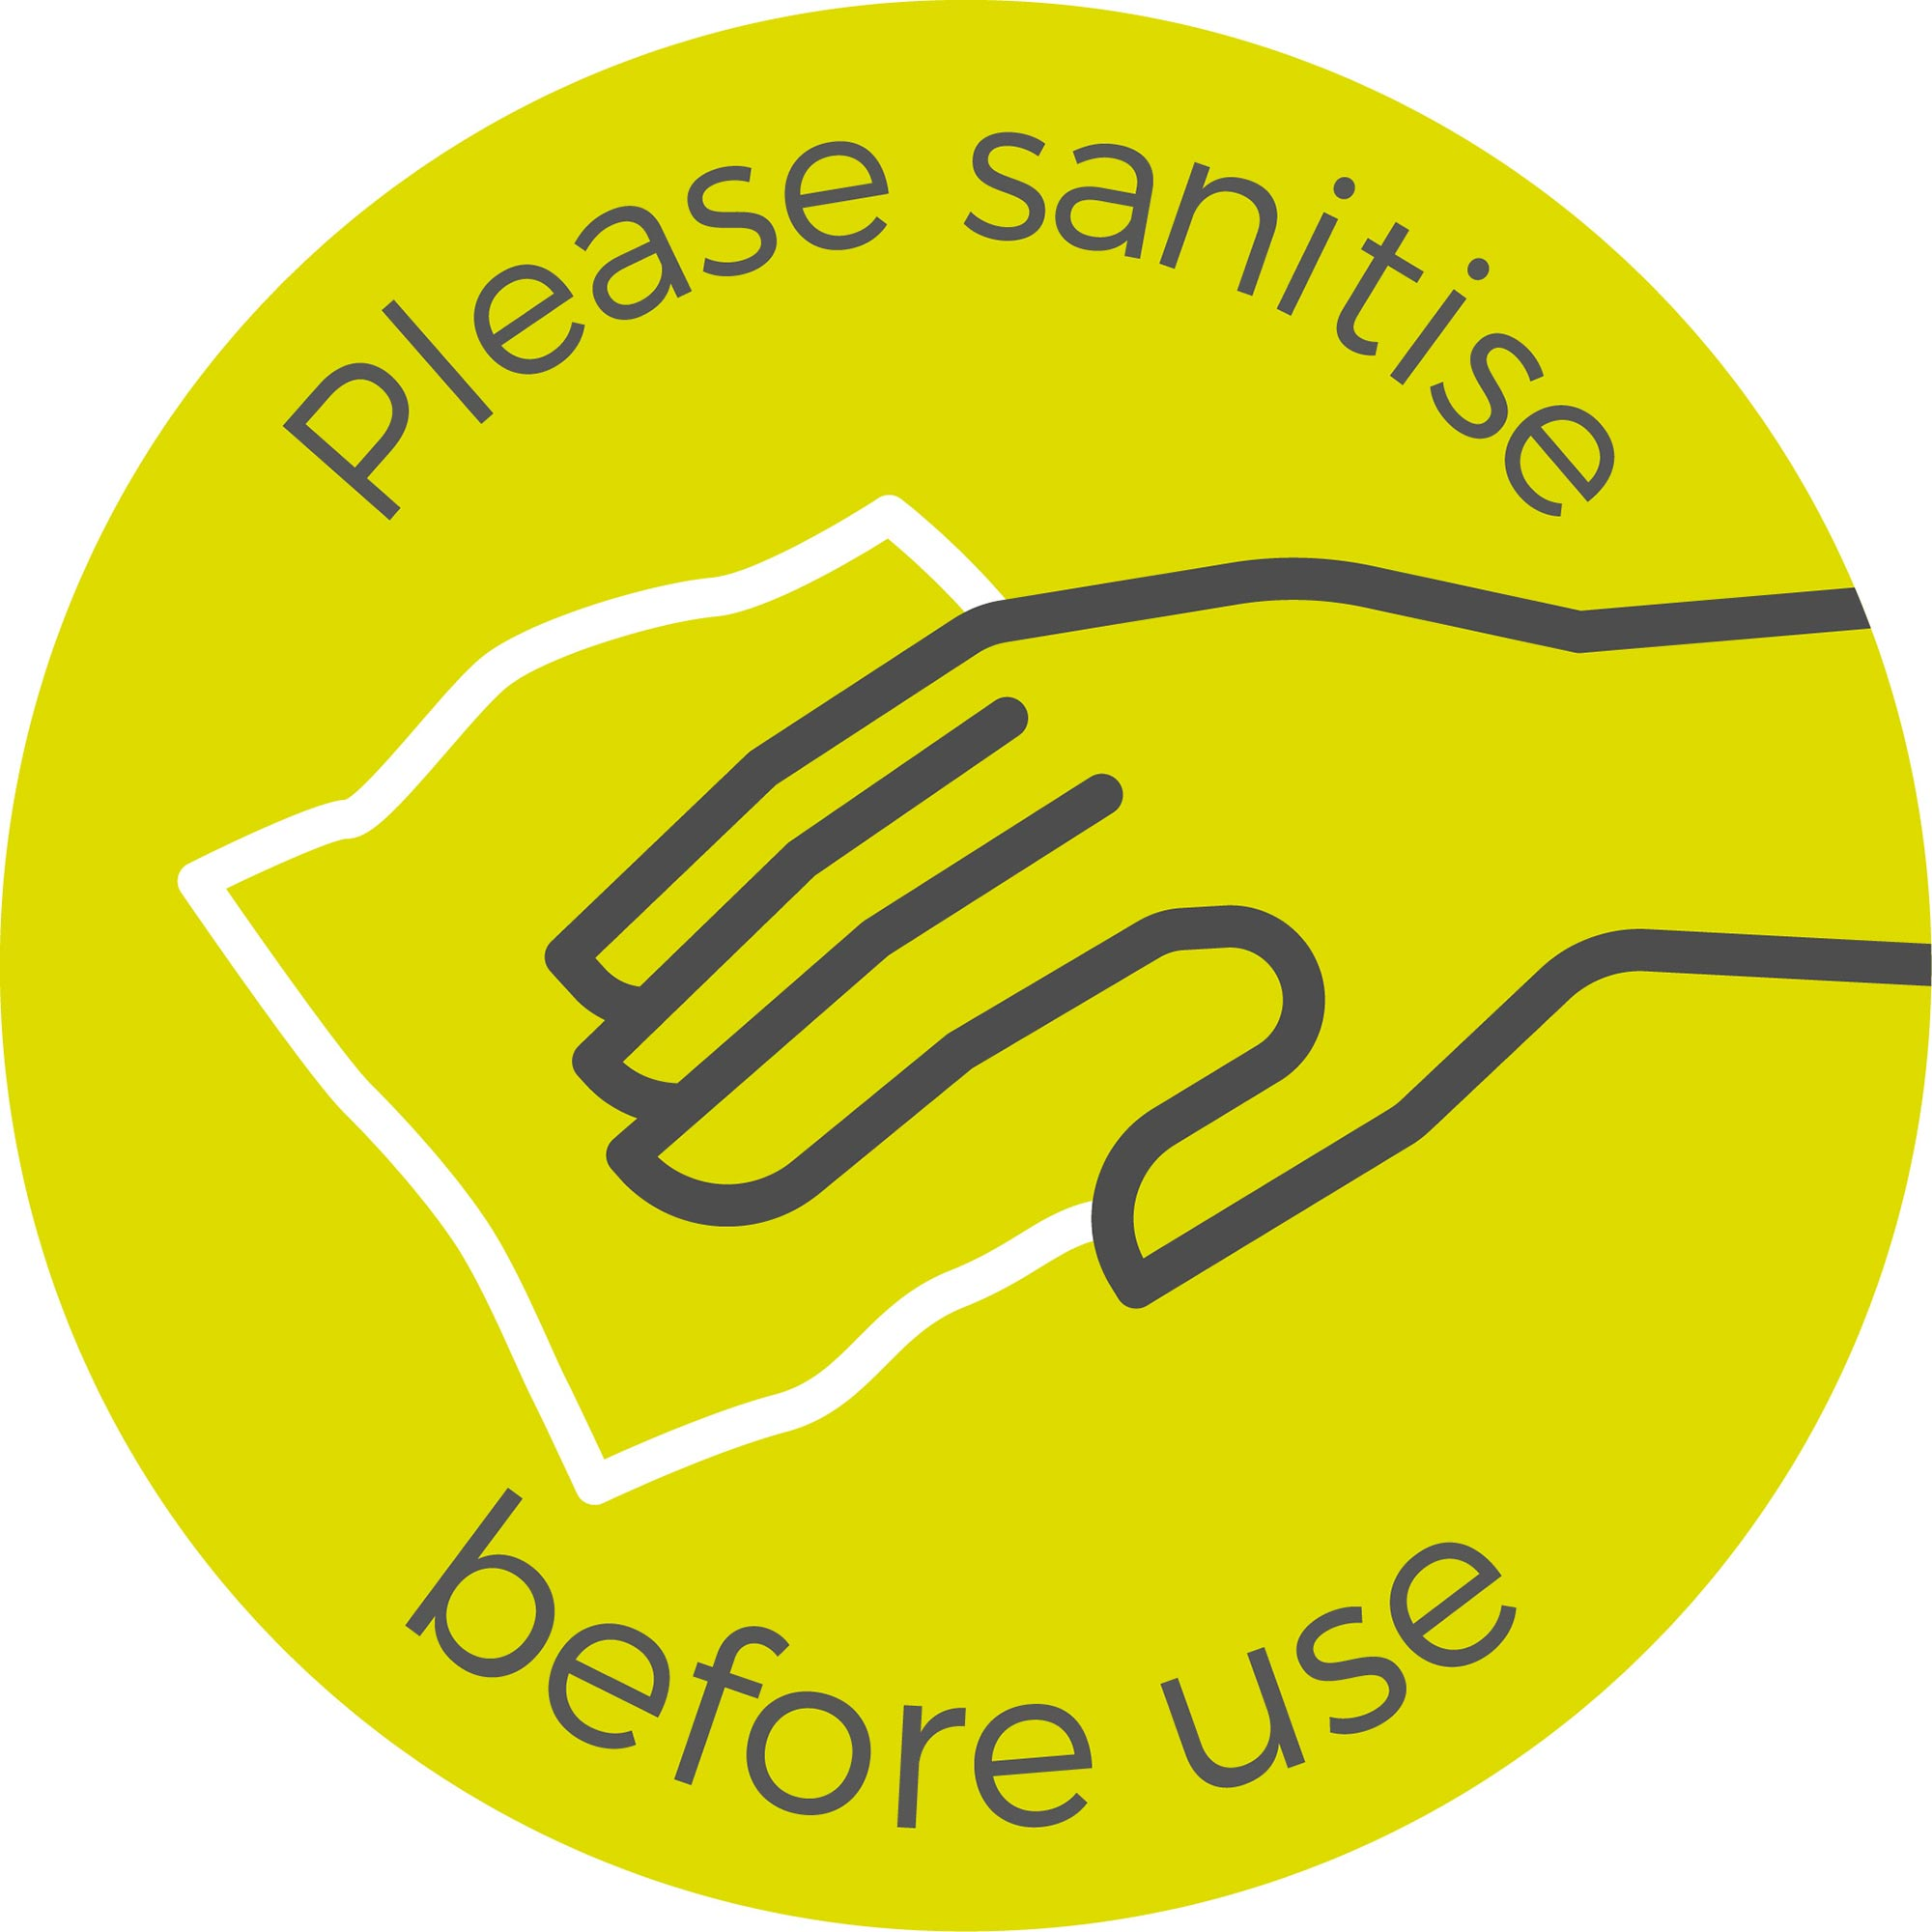 Please Sanitise - Green Sticker